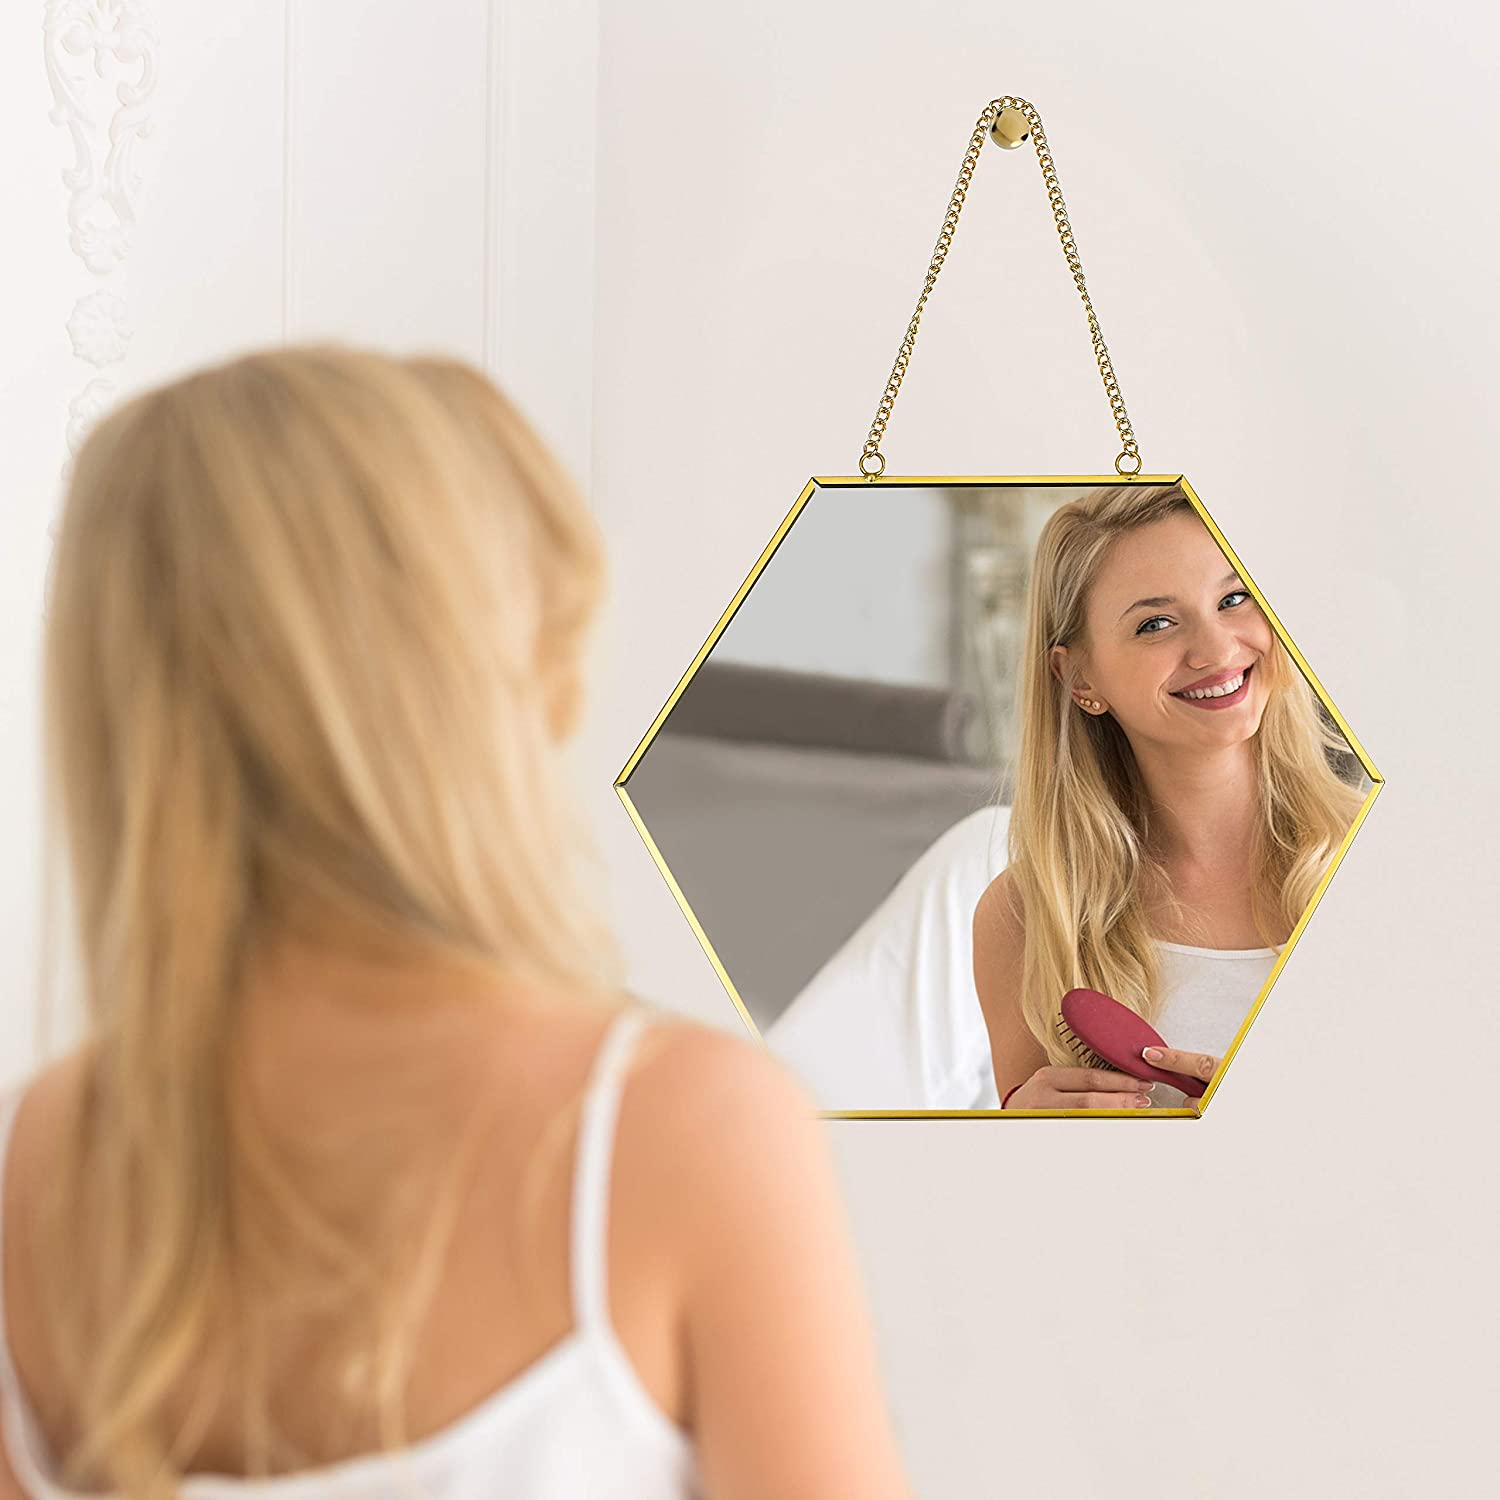 PARNOO 9.5-Inch Hexagonal Wall Mounted Mirror with Chain & Rose Gold Frame | Decorative Hanging Mirror for Bedroom, Living Room